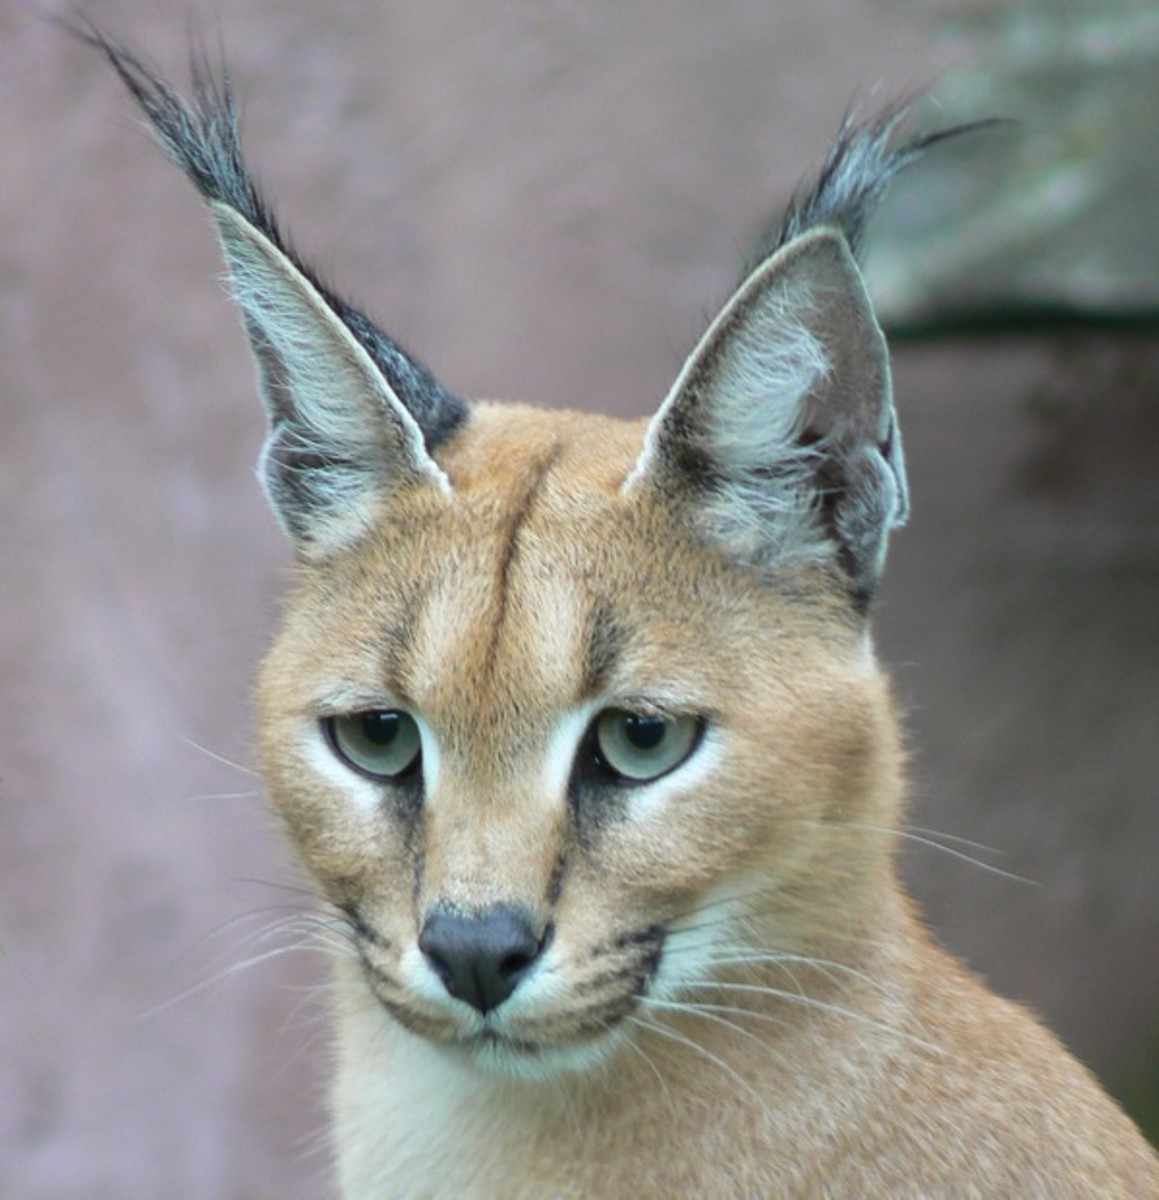 Notice the pointed heat and black tufted ears.